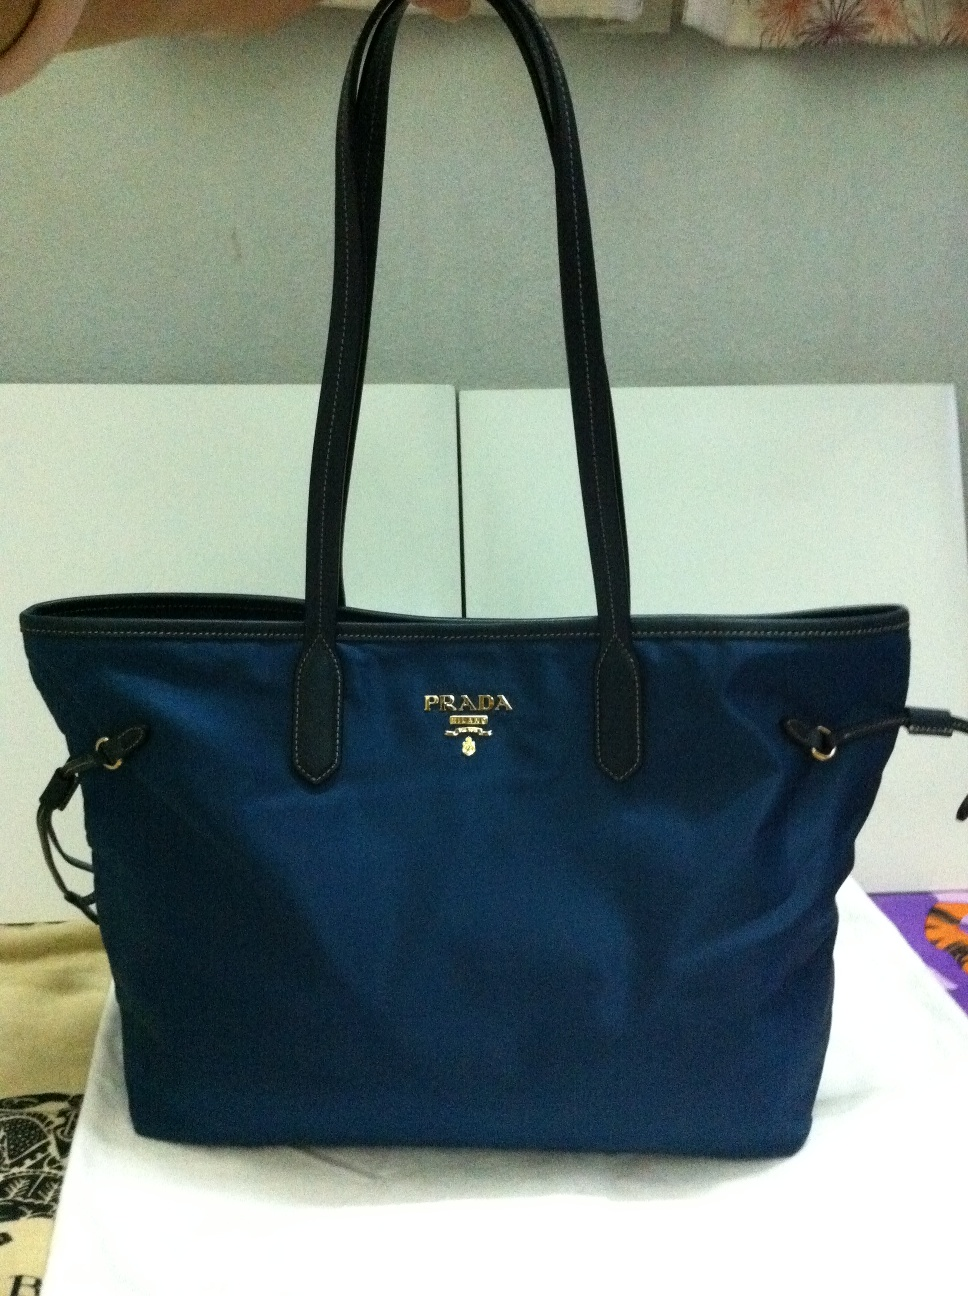 faux prada purse - Authentic Luxury Items @ Bargain Price: Prada BR4001 Nylon Dark ...